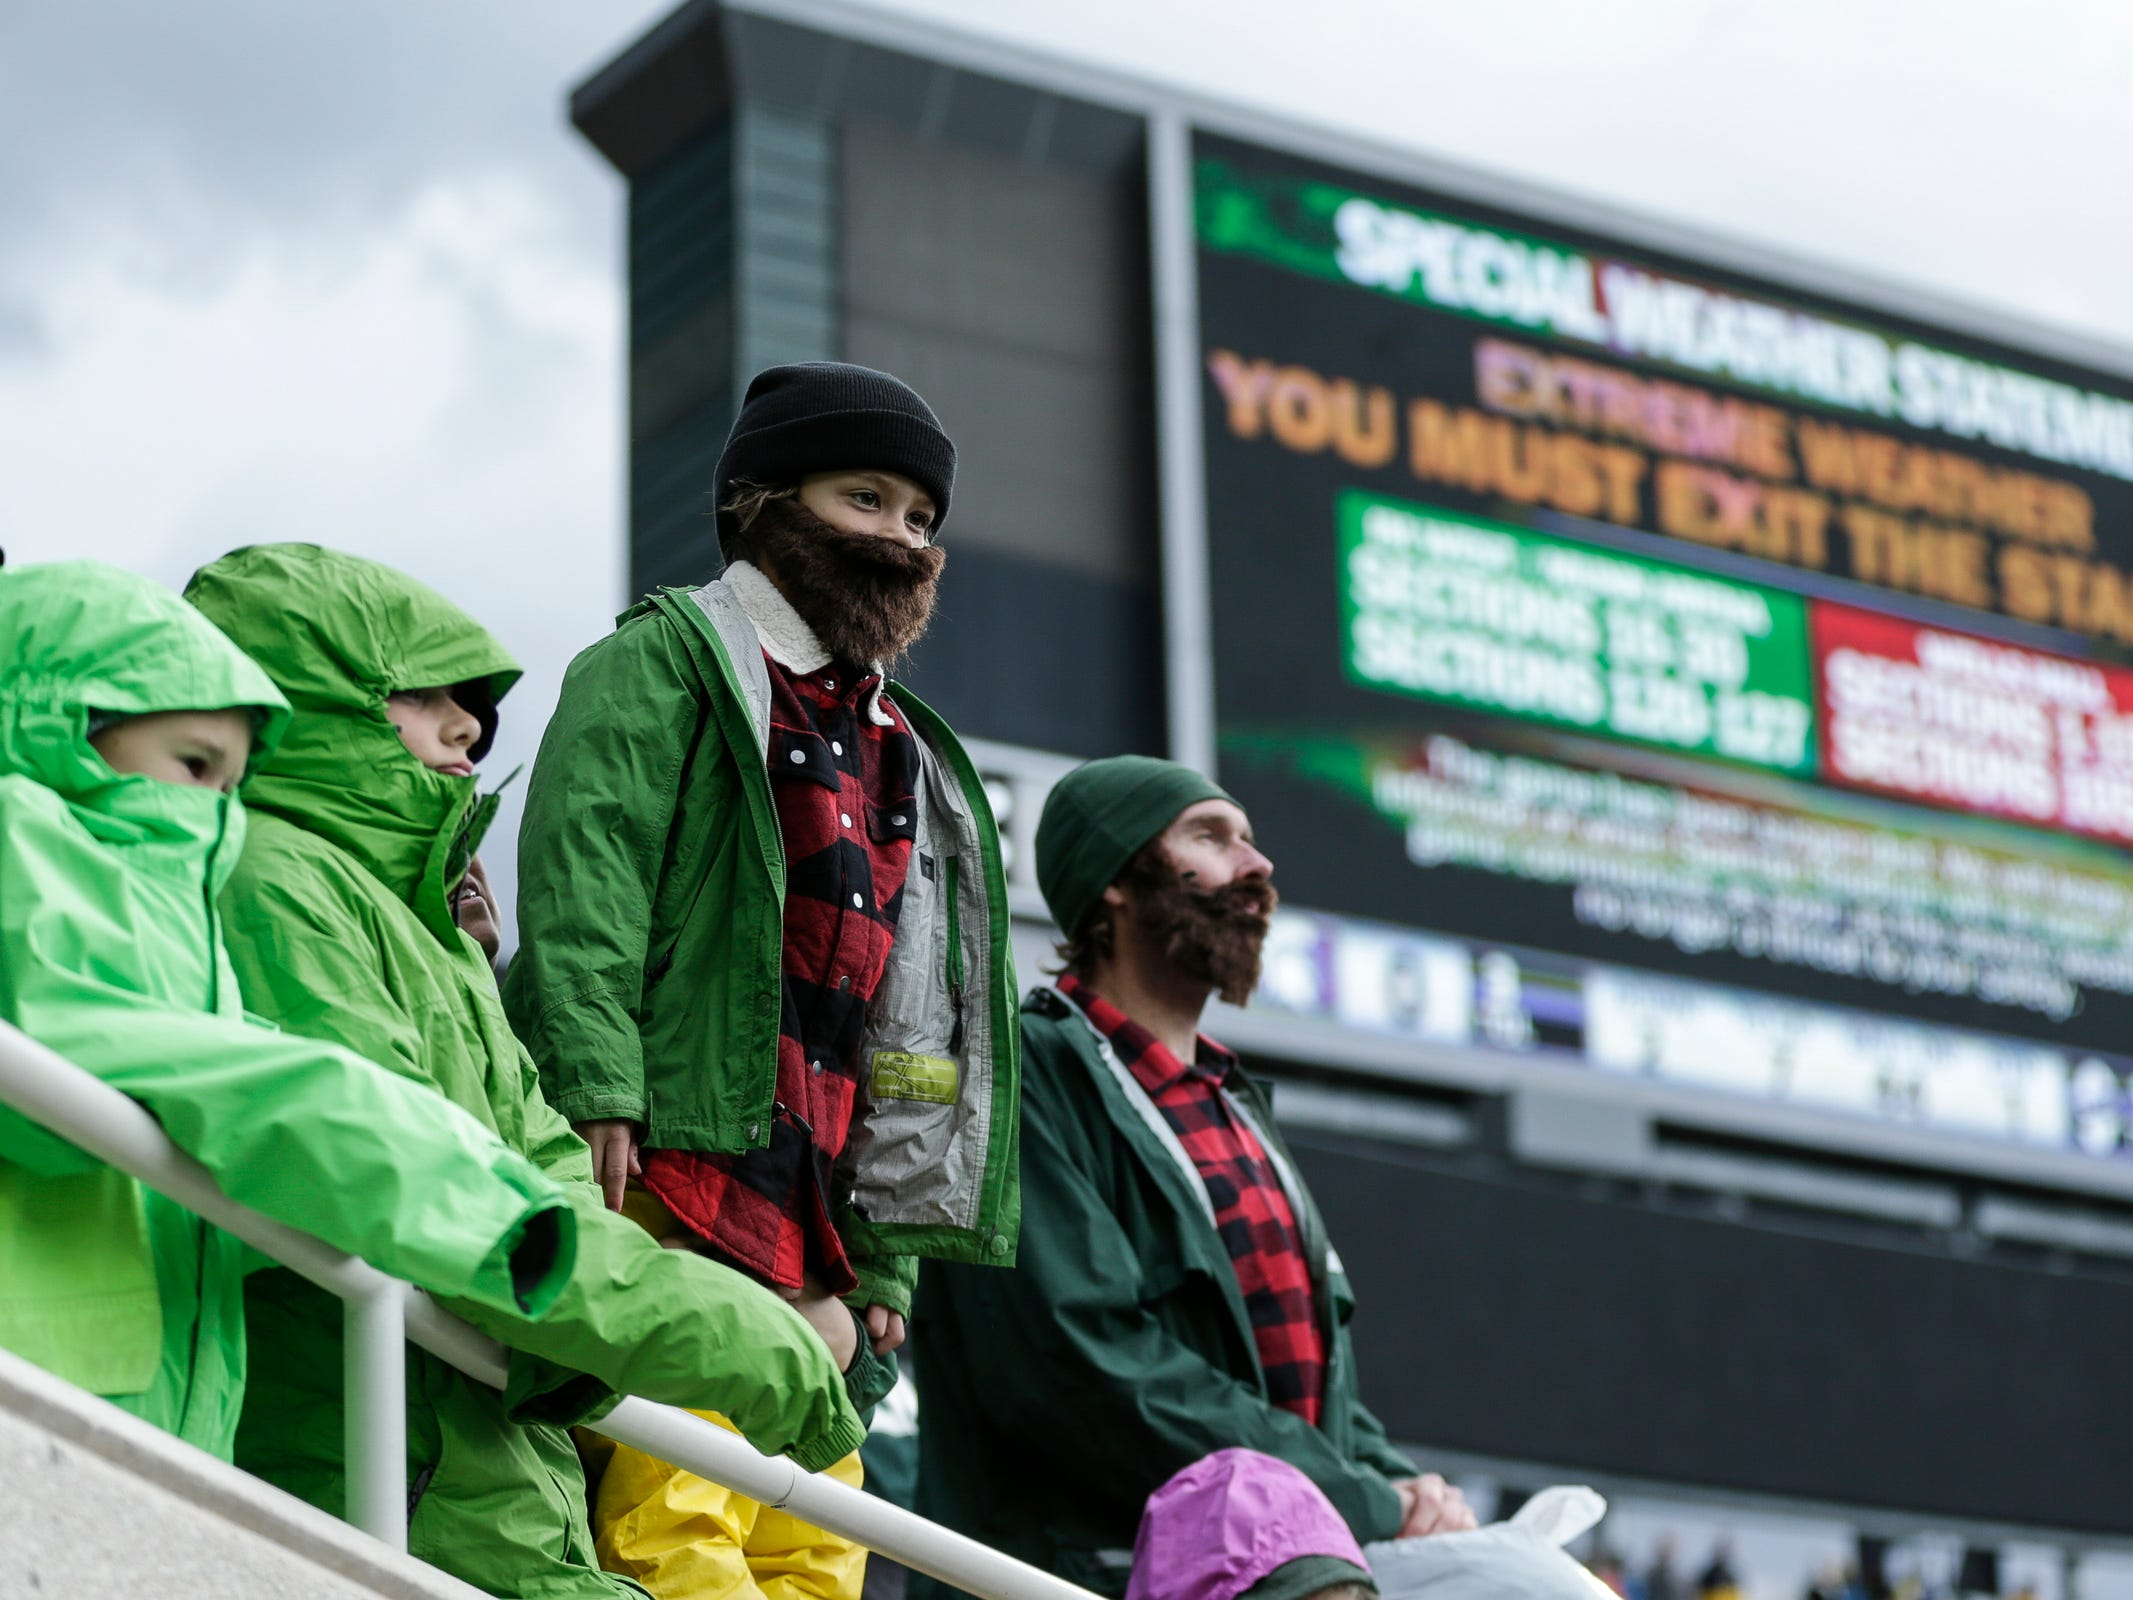 Fans evacuated from Spartan Stadium in the first quarter of the Michigan-Michigan State game due to weather delay on Saturday, Oct. 20, 2018.